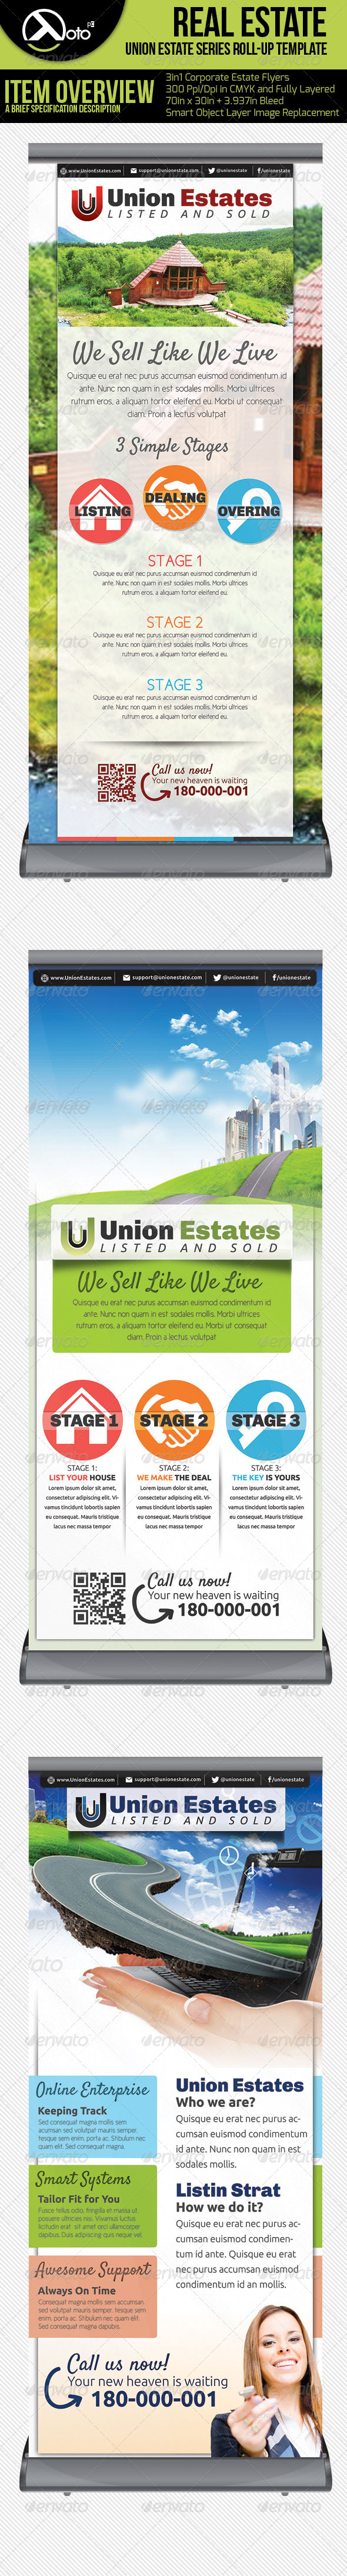 GraphicRiver 3 in 1 Real Estate Roll-up Banners 5466955